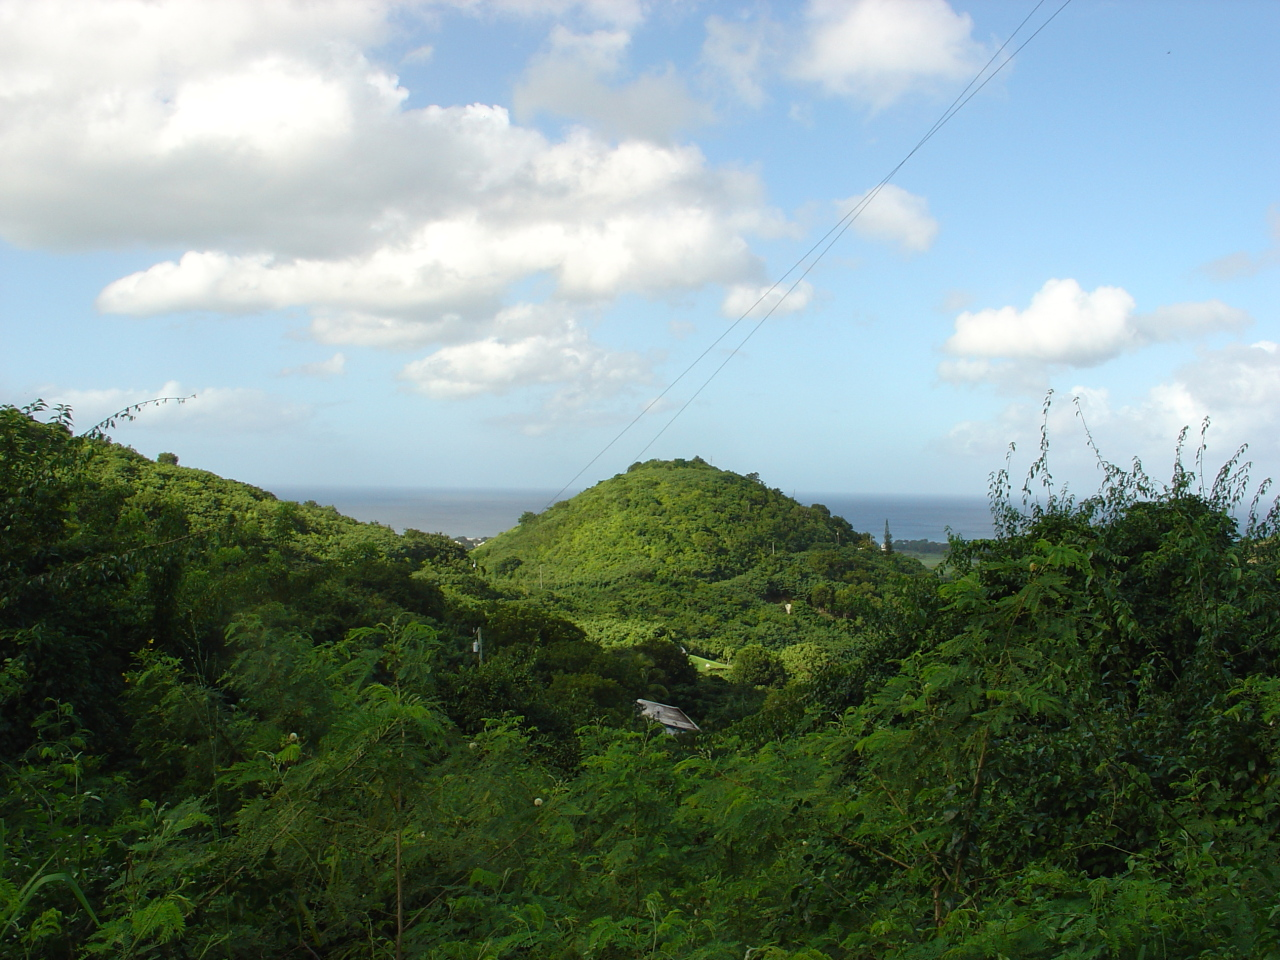 Land for Sale at 231 Little La Grange WE 231 Little La Grange WE St Croix, Virgin Islands 00840 United States Virgin Islands